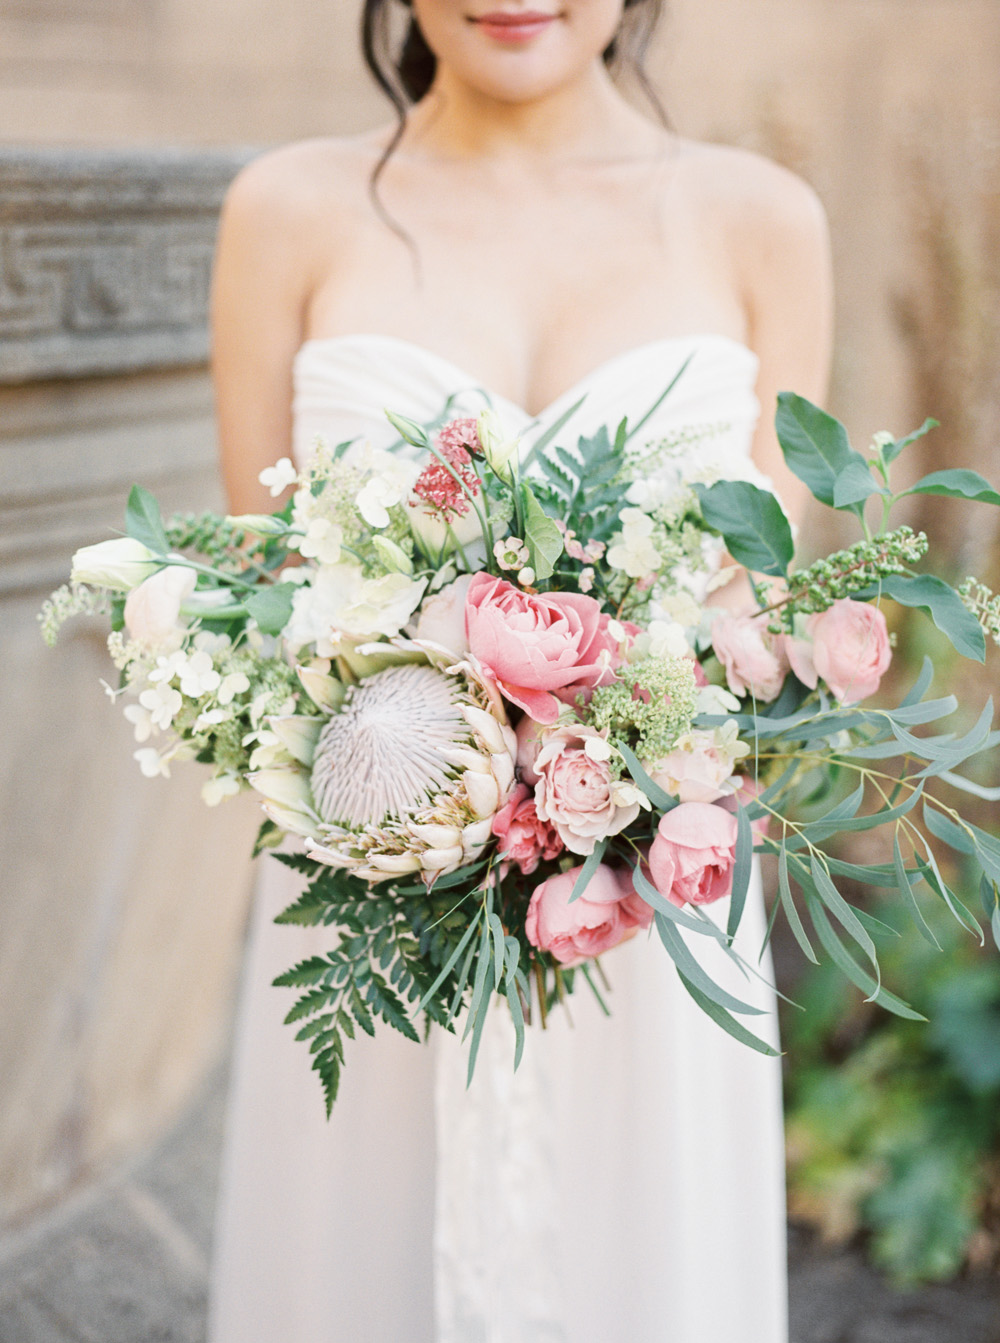 Blush and pink bridal bouquet inspiration peony and roses with greenery and spring colors  | by Lara Lam photography